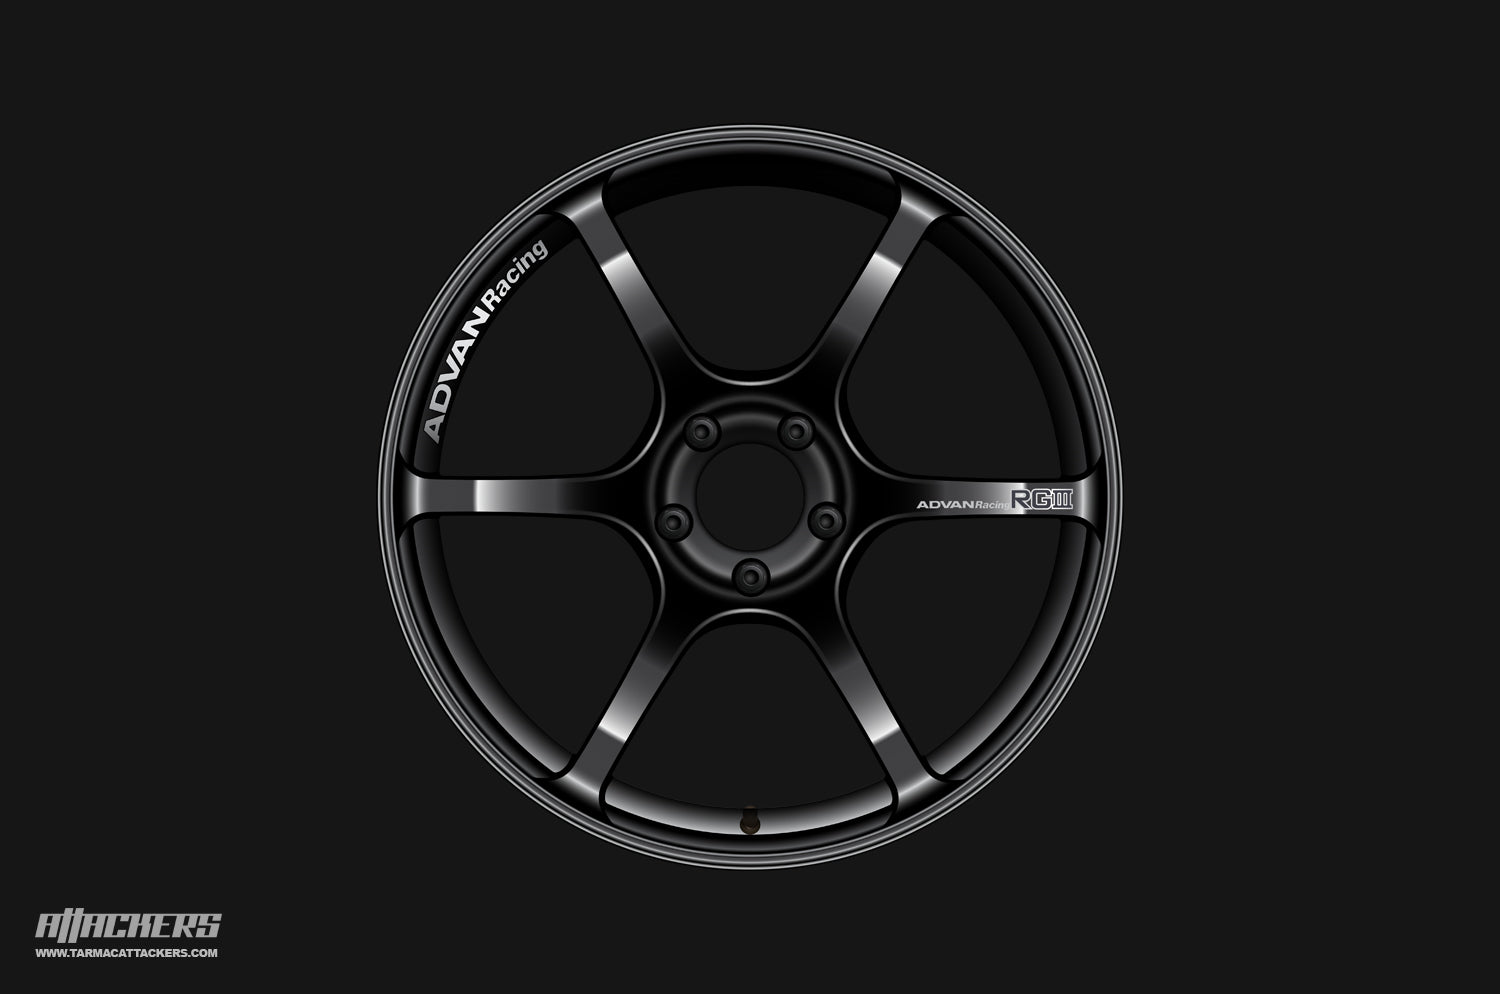 Advan RGIII Black wheels